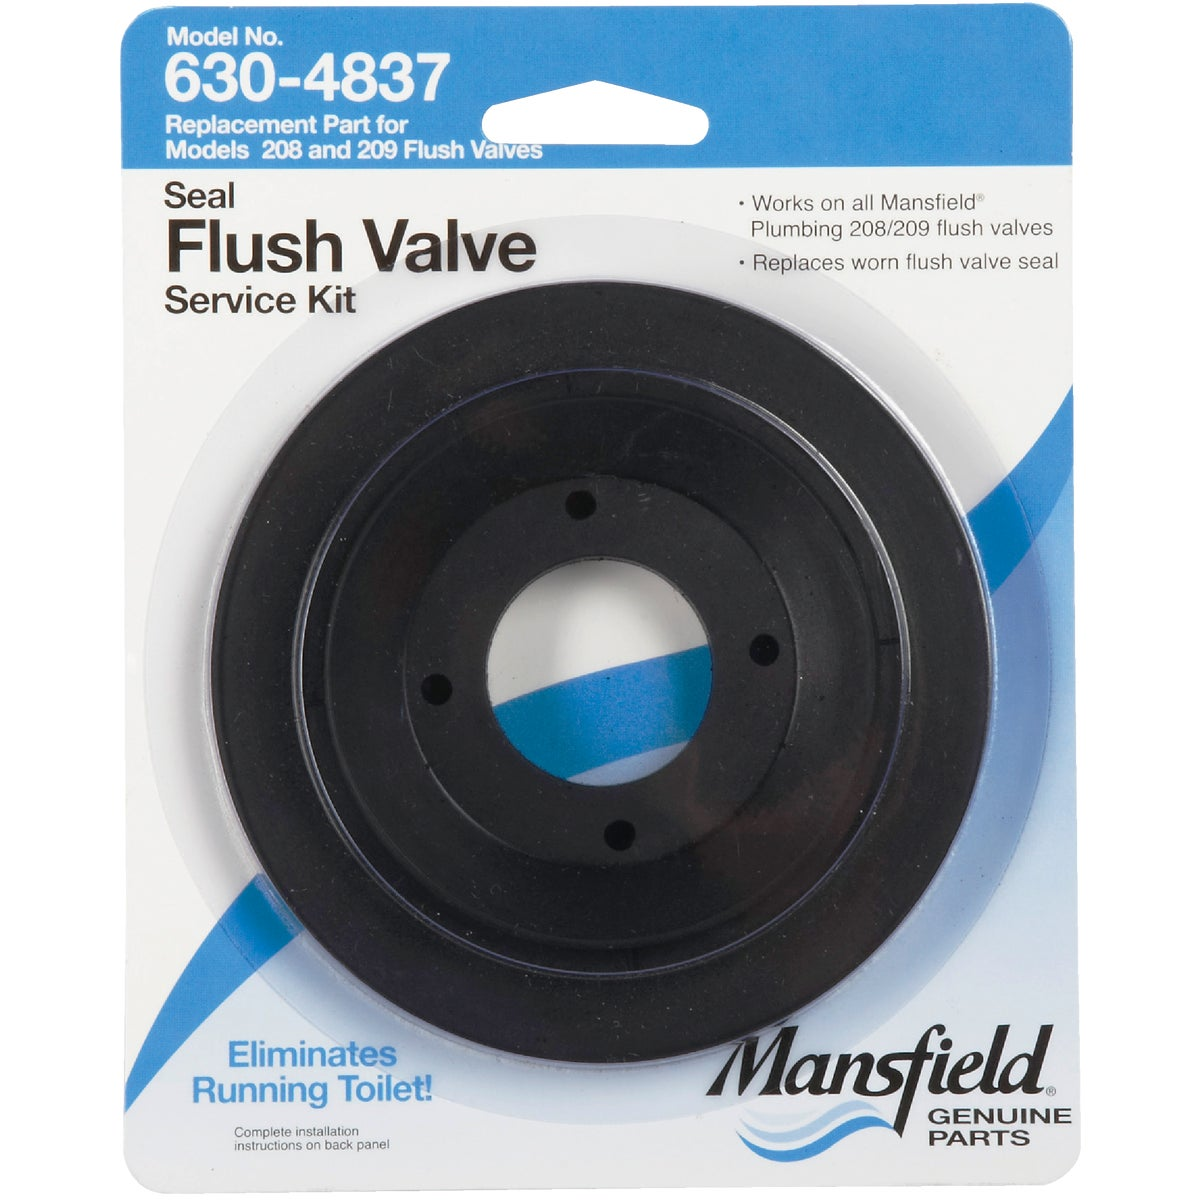 REPLACE FLUSH VALVE SEAL - 106304837 by Mansfield Plumbing